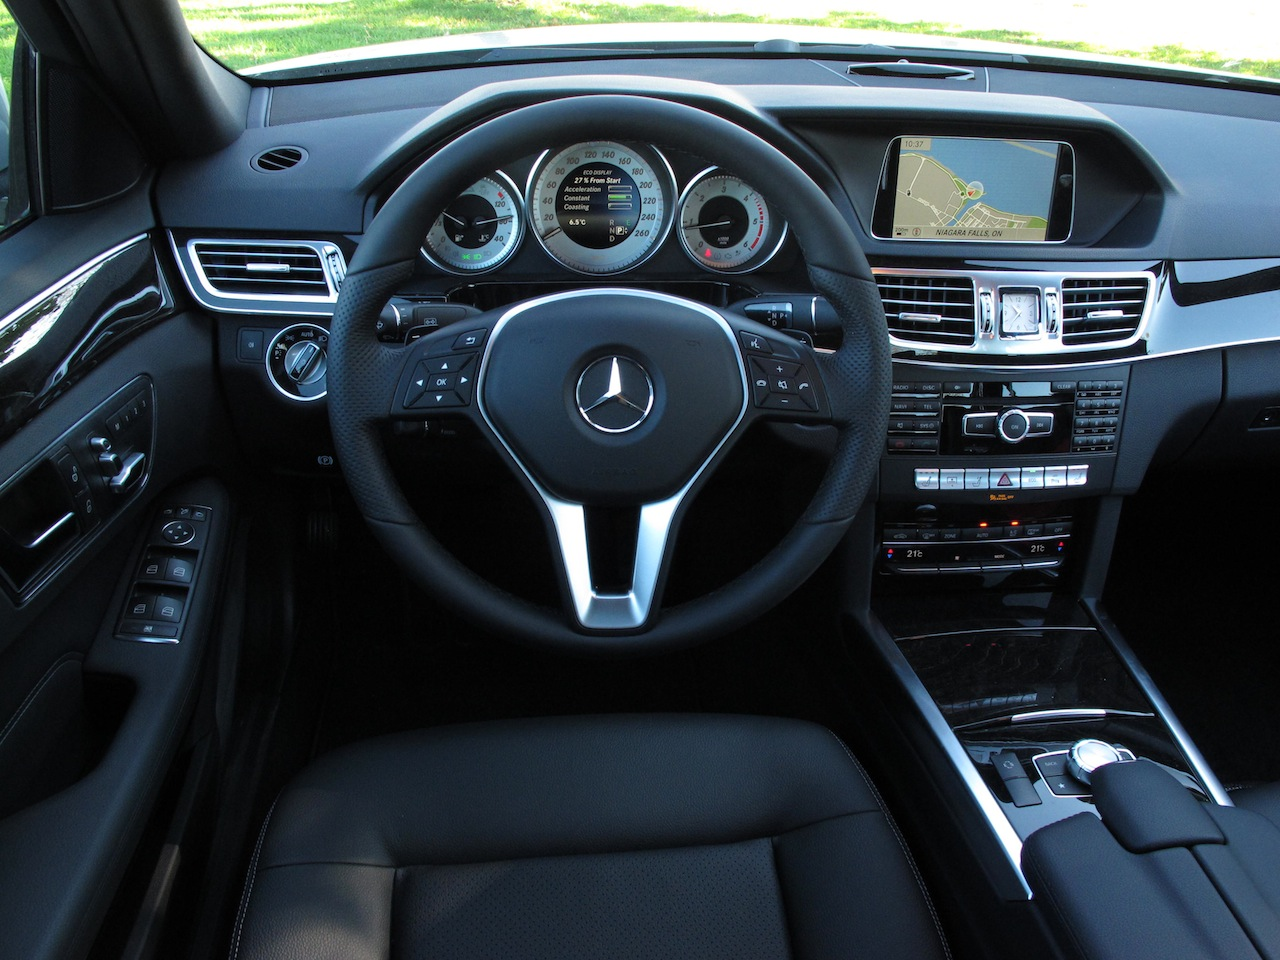 Led Lights For Cars >> 2014 Mercedes-Benz E250 BlueTEC Review - Cars, Photos, Test Drives, and Reviews | Canadian Auto ...